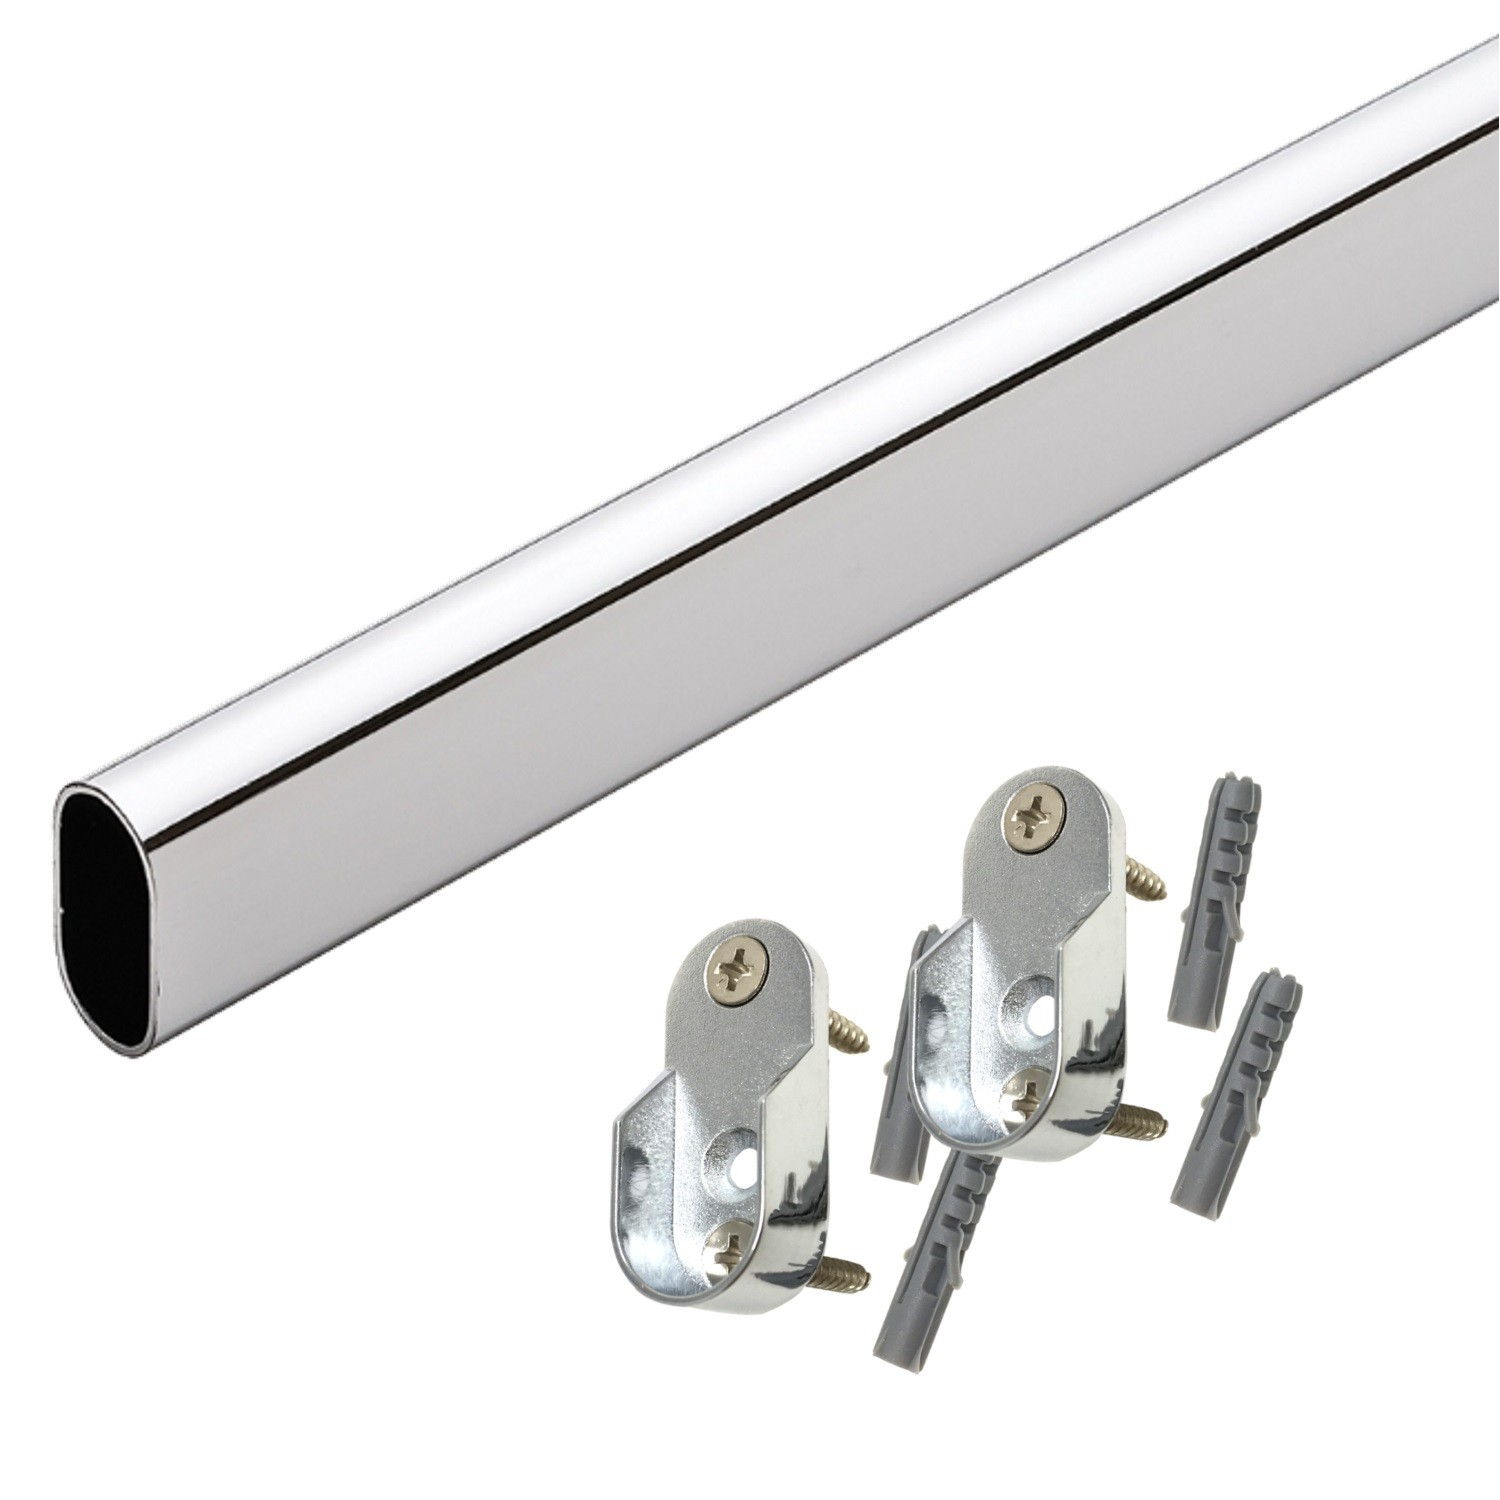 Oval Closet Rod with End Cups - Chrome